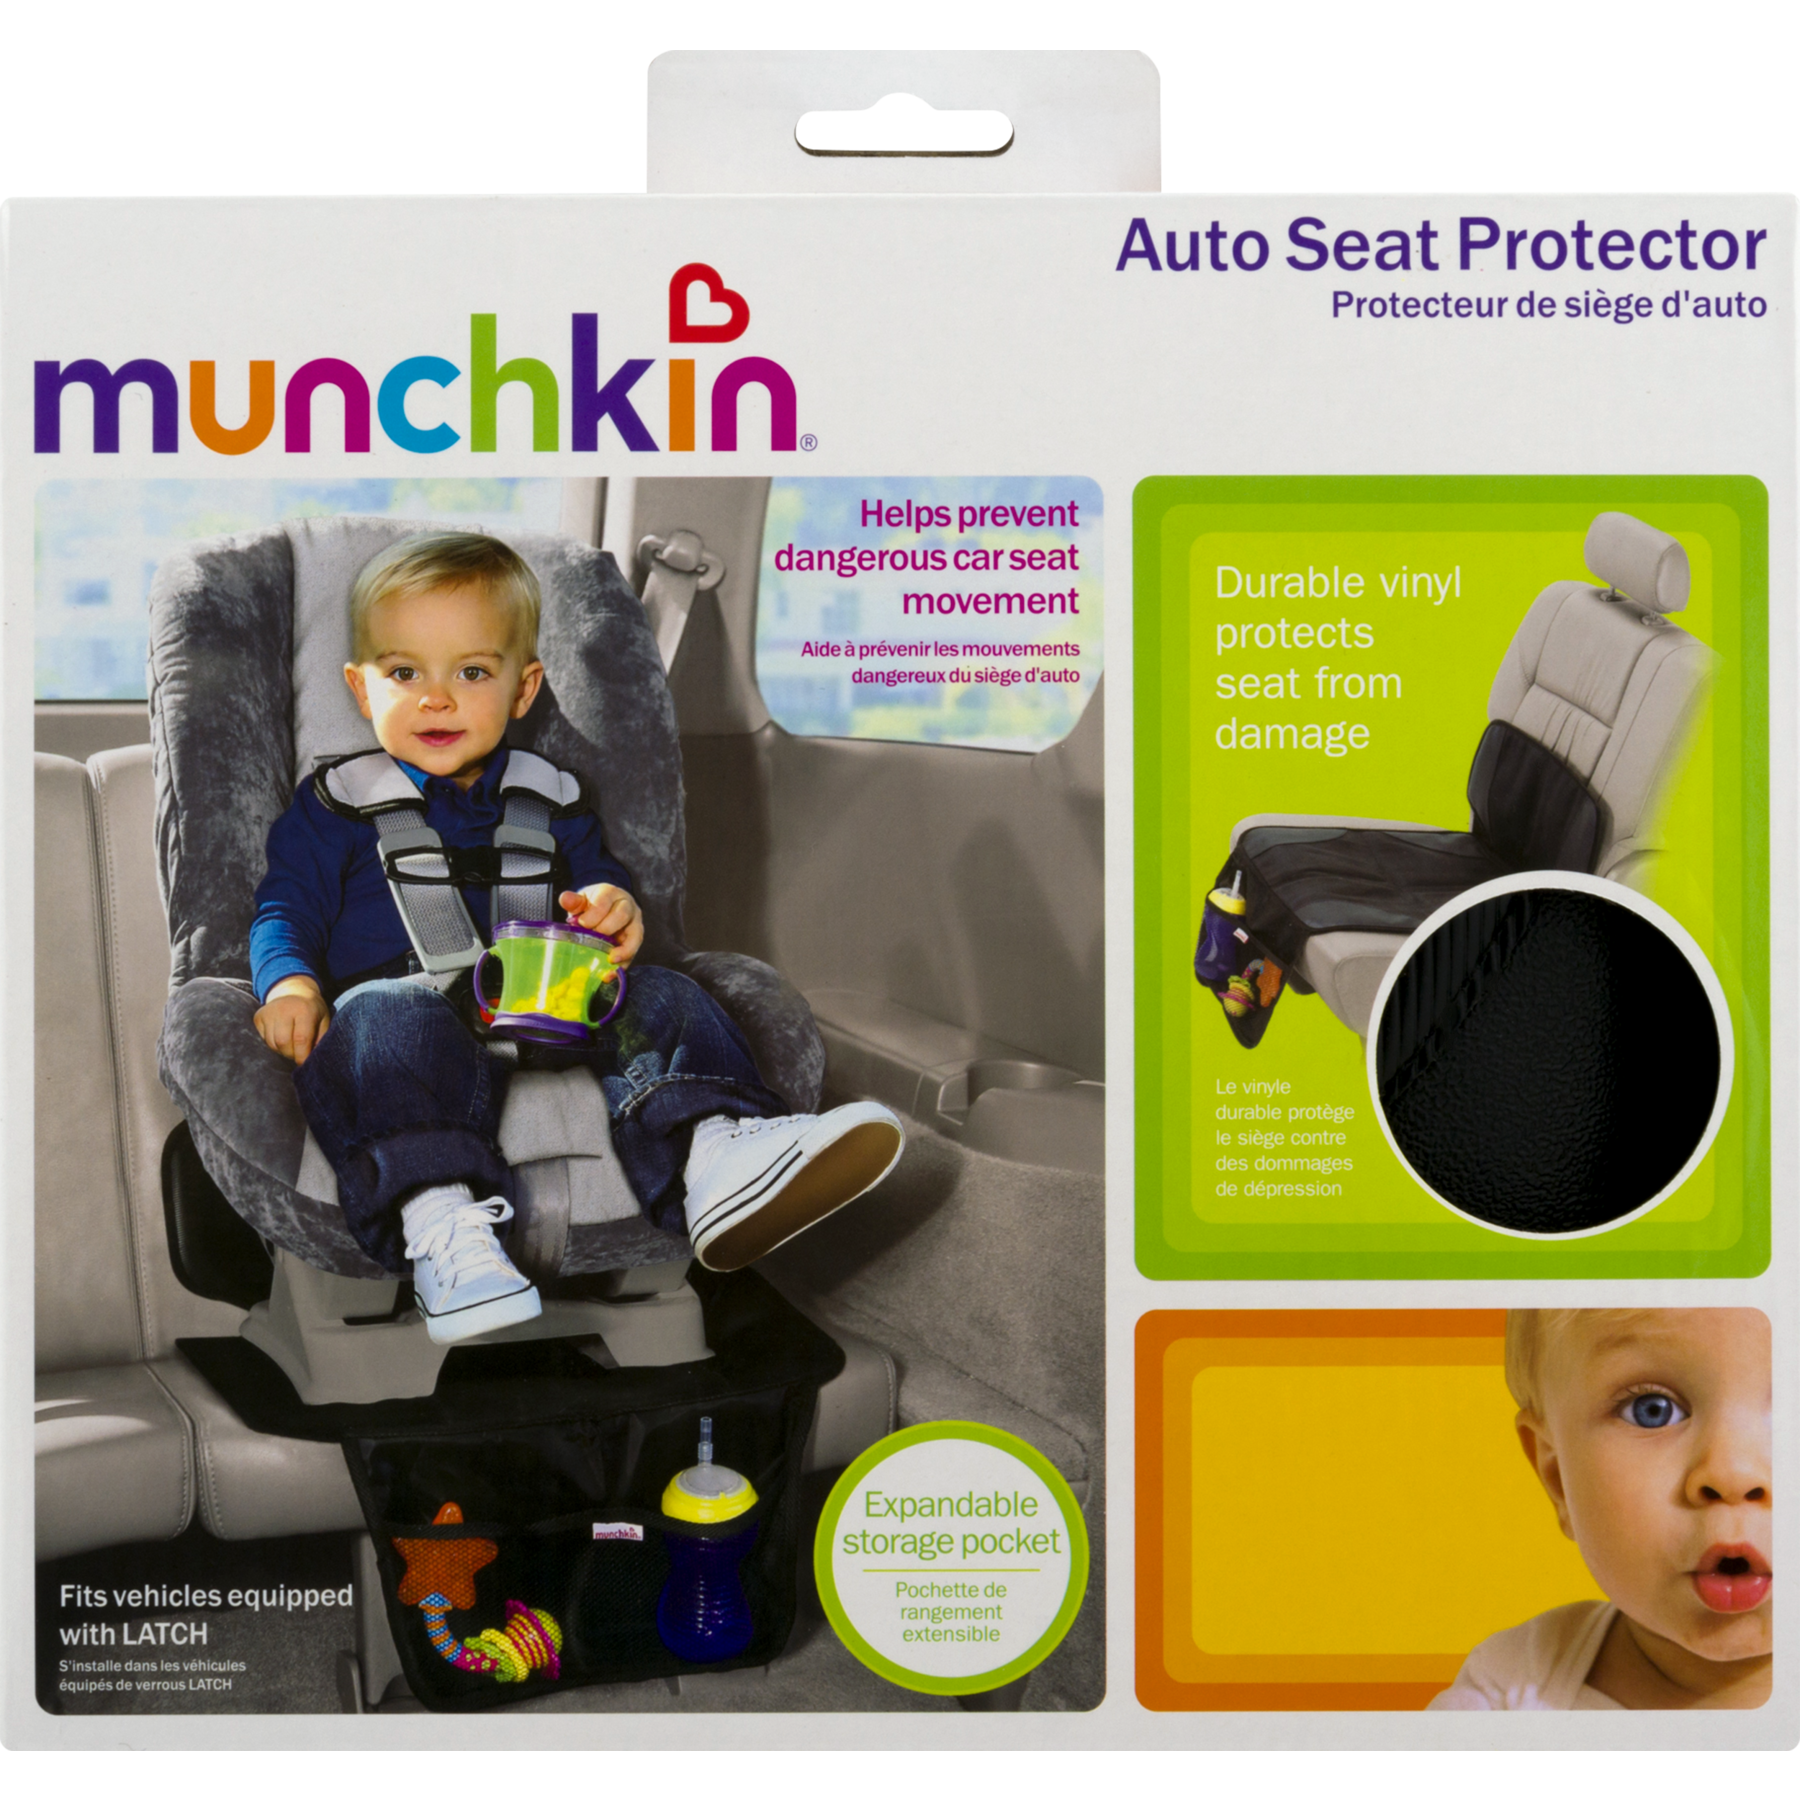 Munchkin Auto Seat Protector 1 Count